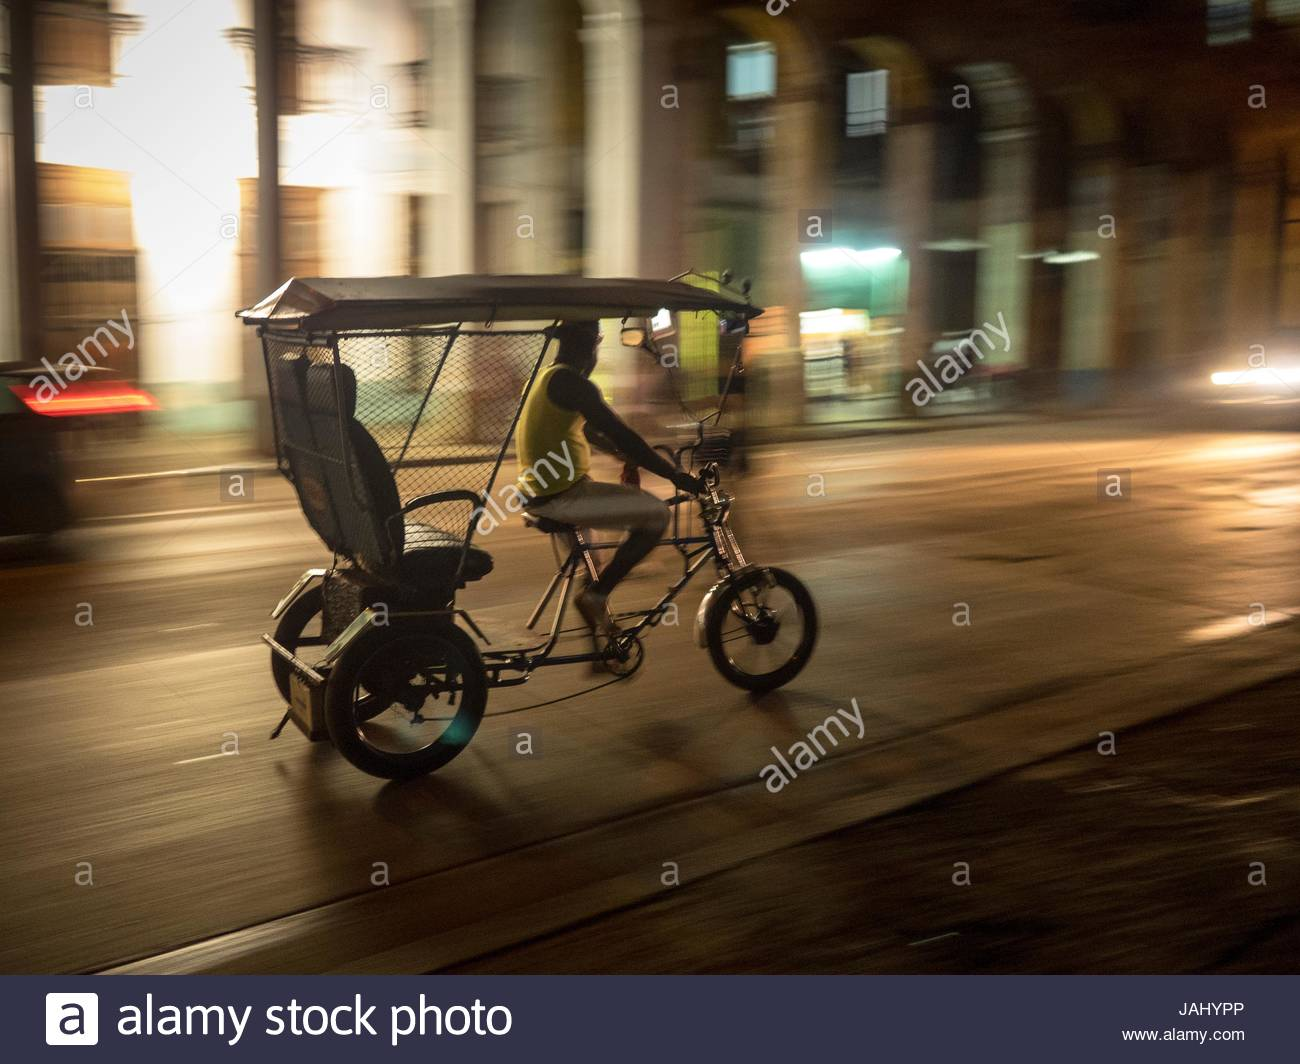 A bicycle cab moves along the Avenida de Belgica at night. - Stock Image